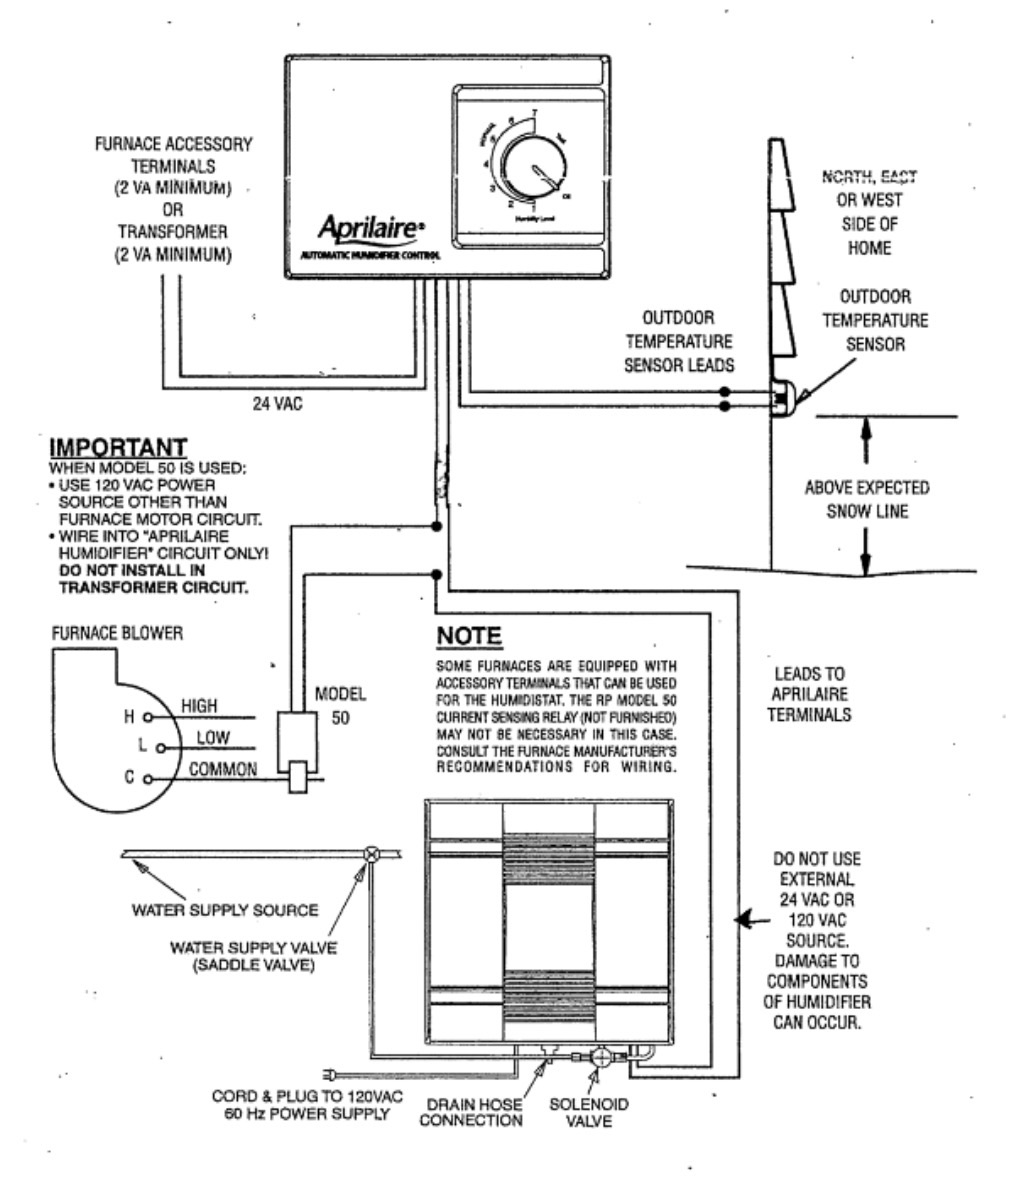 hight resolution of heating wiring aprilaire 700 humidifier to york tg9 furnace pressure wiring diagram enter image description